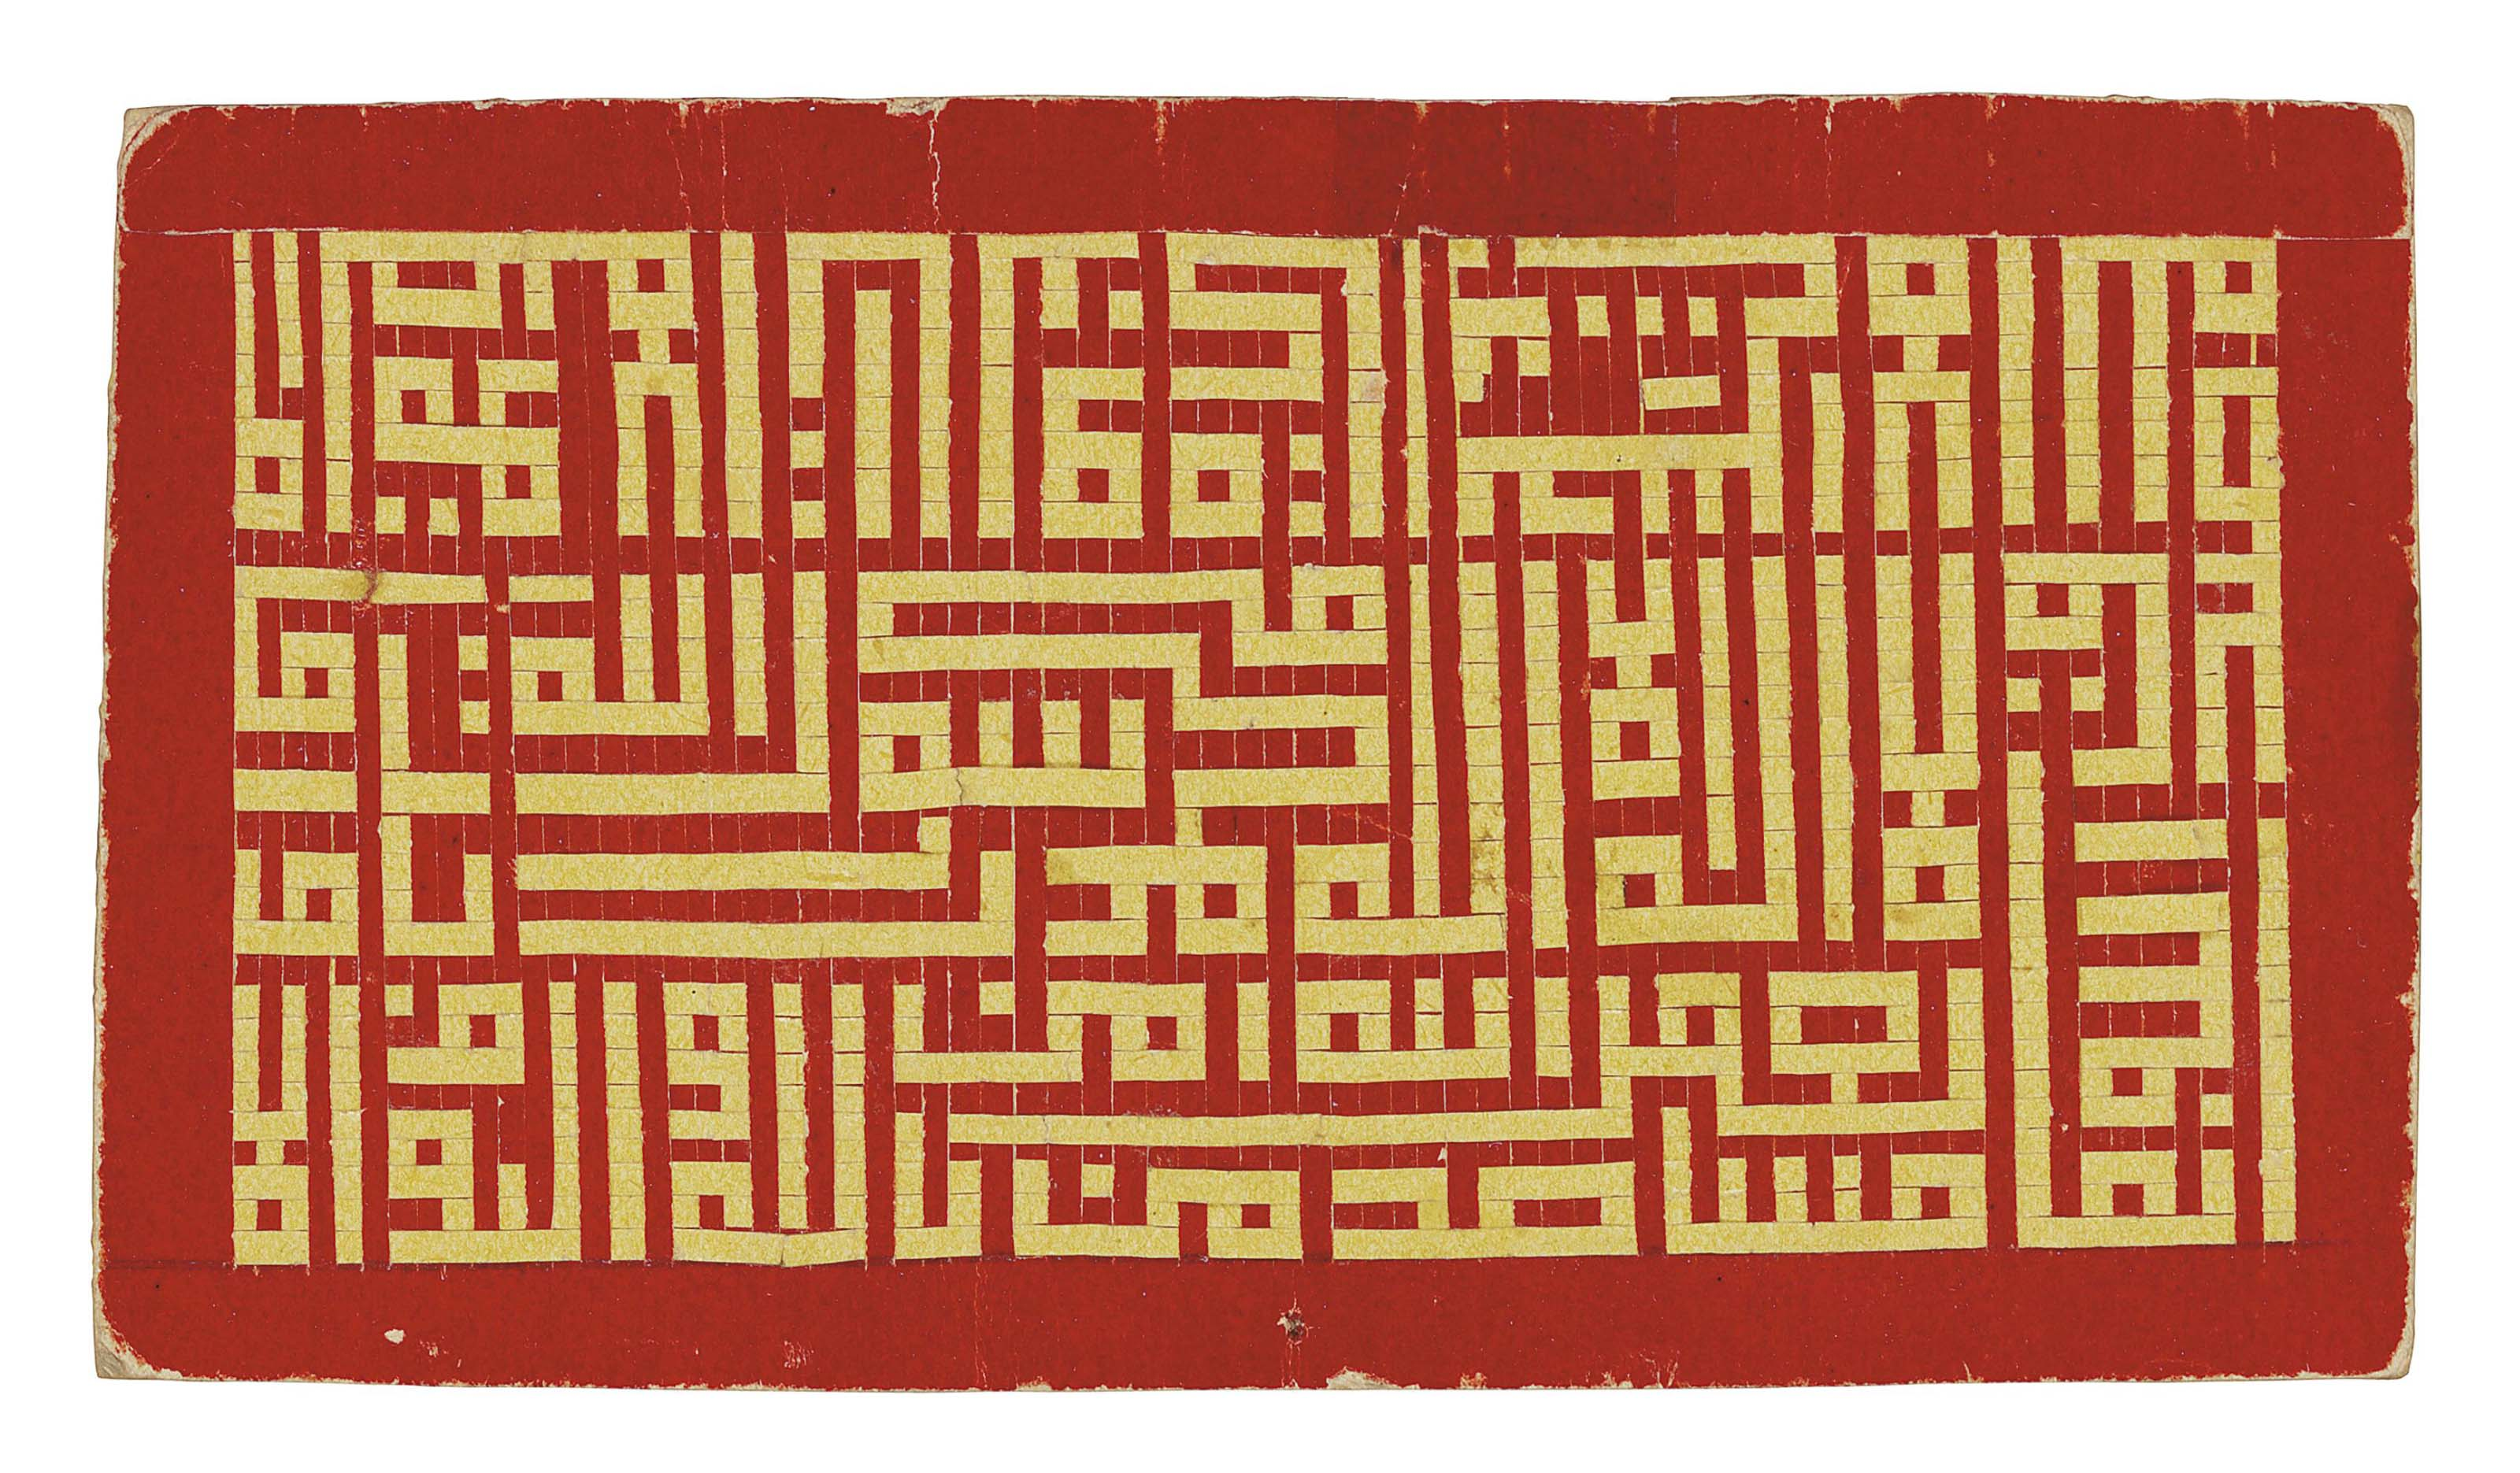 A CALLIGRAPHIC COMPOSITION IN GEOMETRIC KUFIC SCRIPT